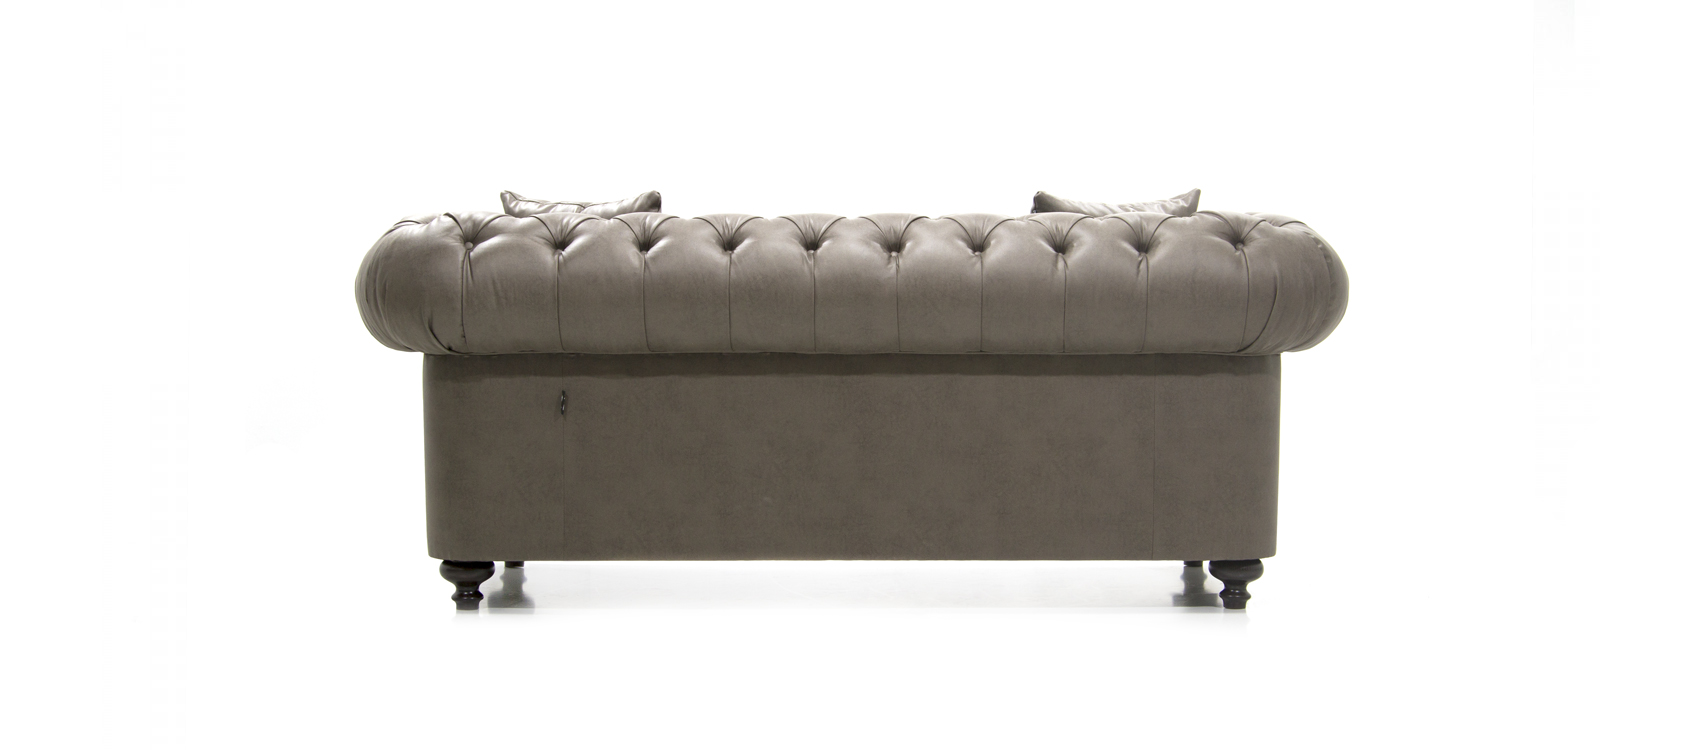 Sofa CHESTER 2 SEATER фото 7